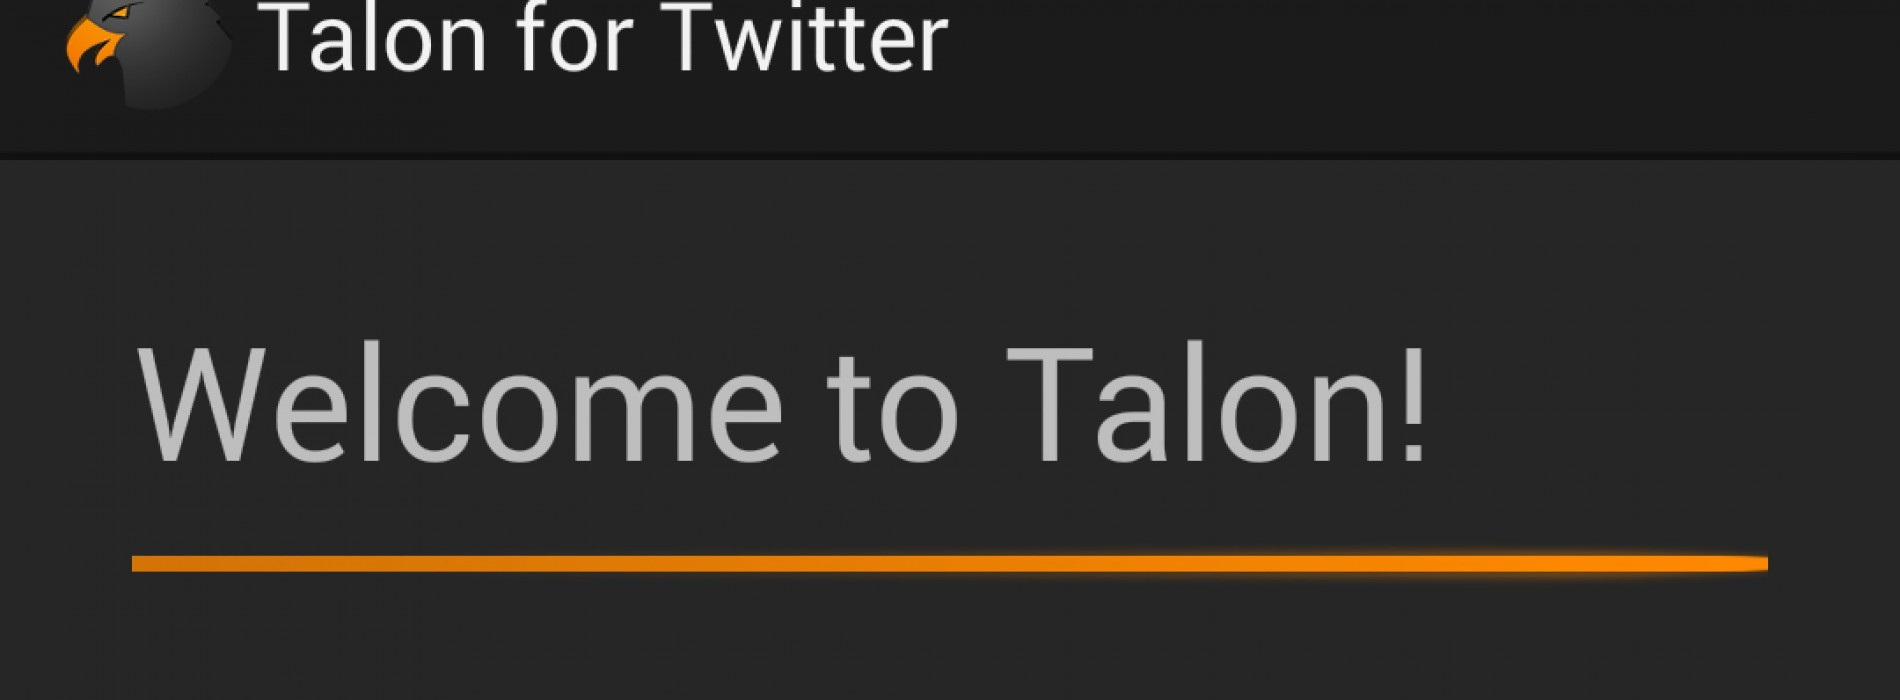 Talon for Twitter updated to 2.0 with floating compose button, new widgets, and more!